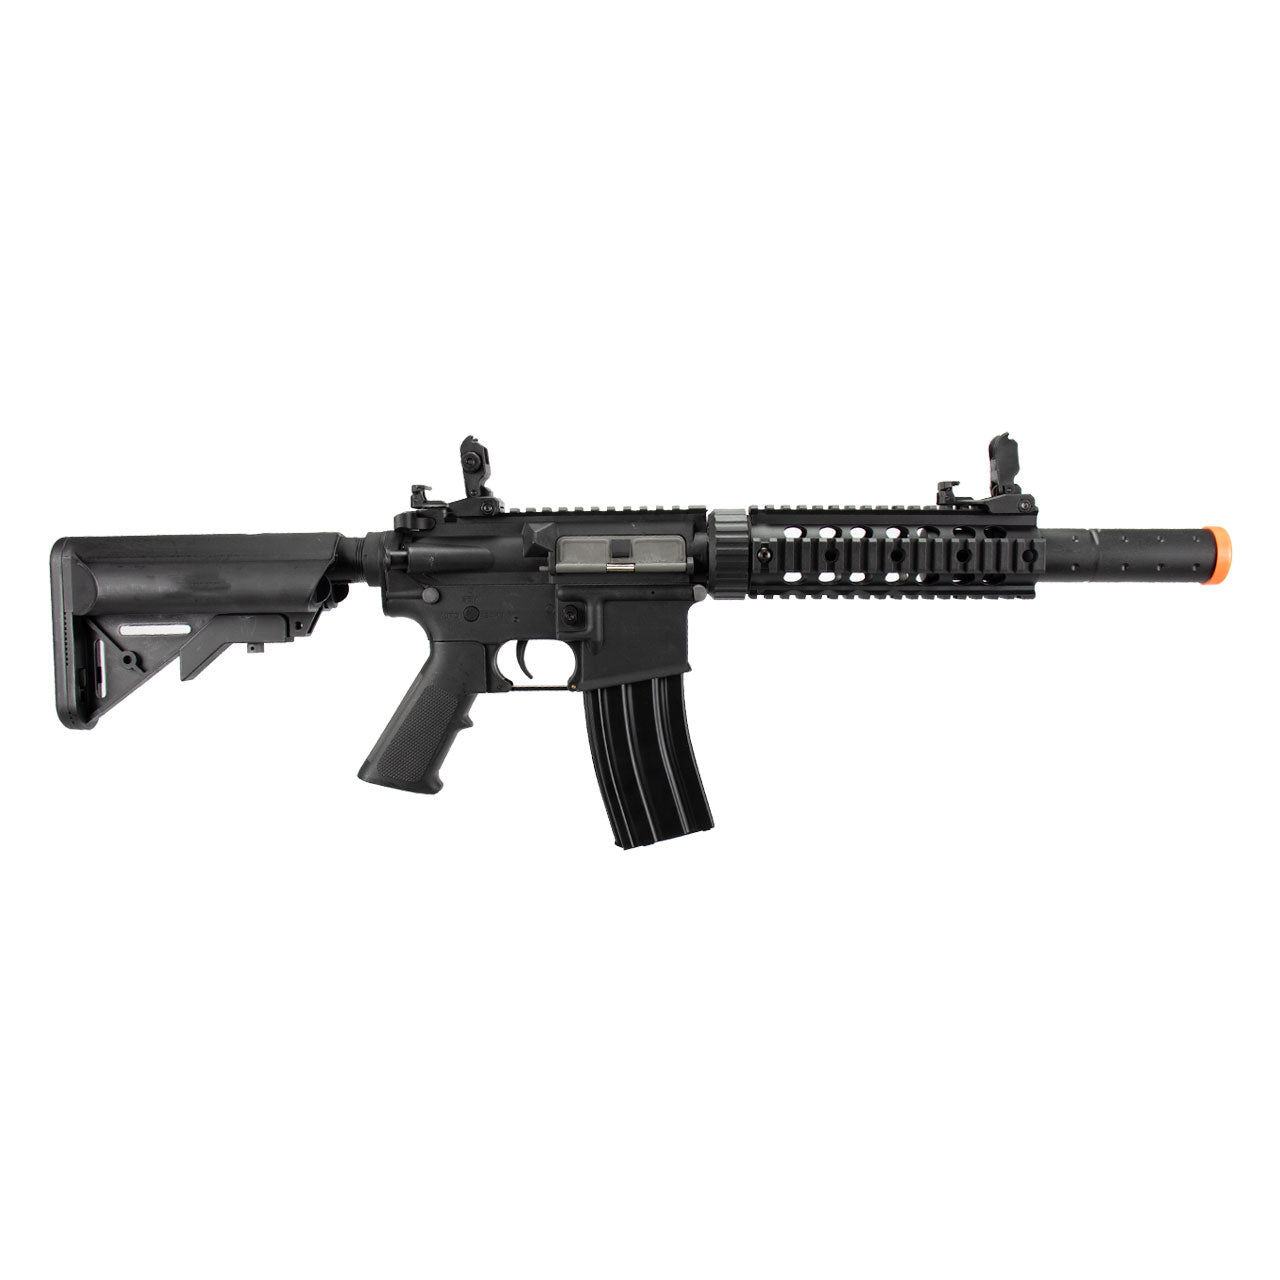 Lancer Tactical LT-15-G2 Gen 2 M4 SD Carbine AEG Airsoft Rifle